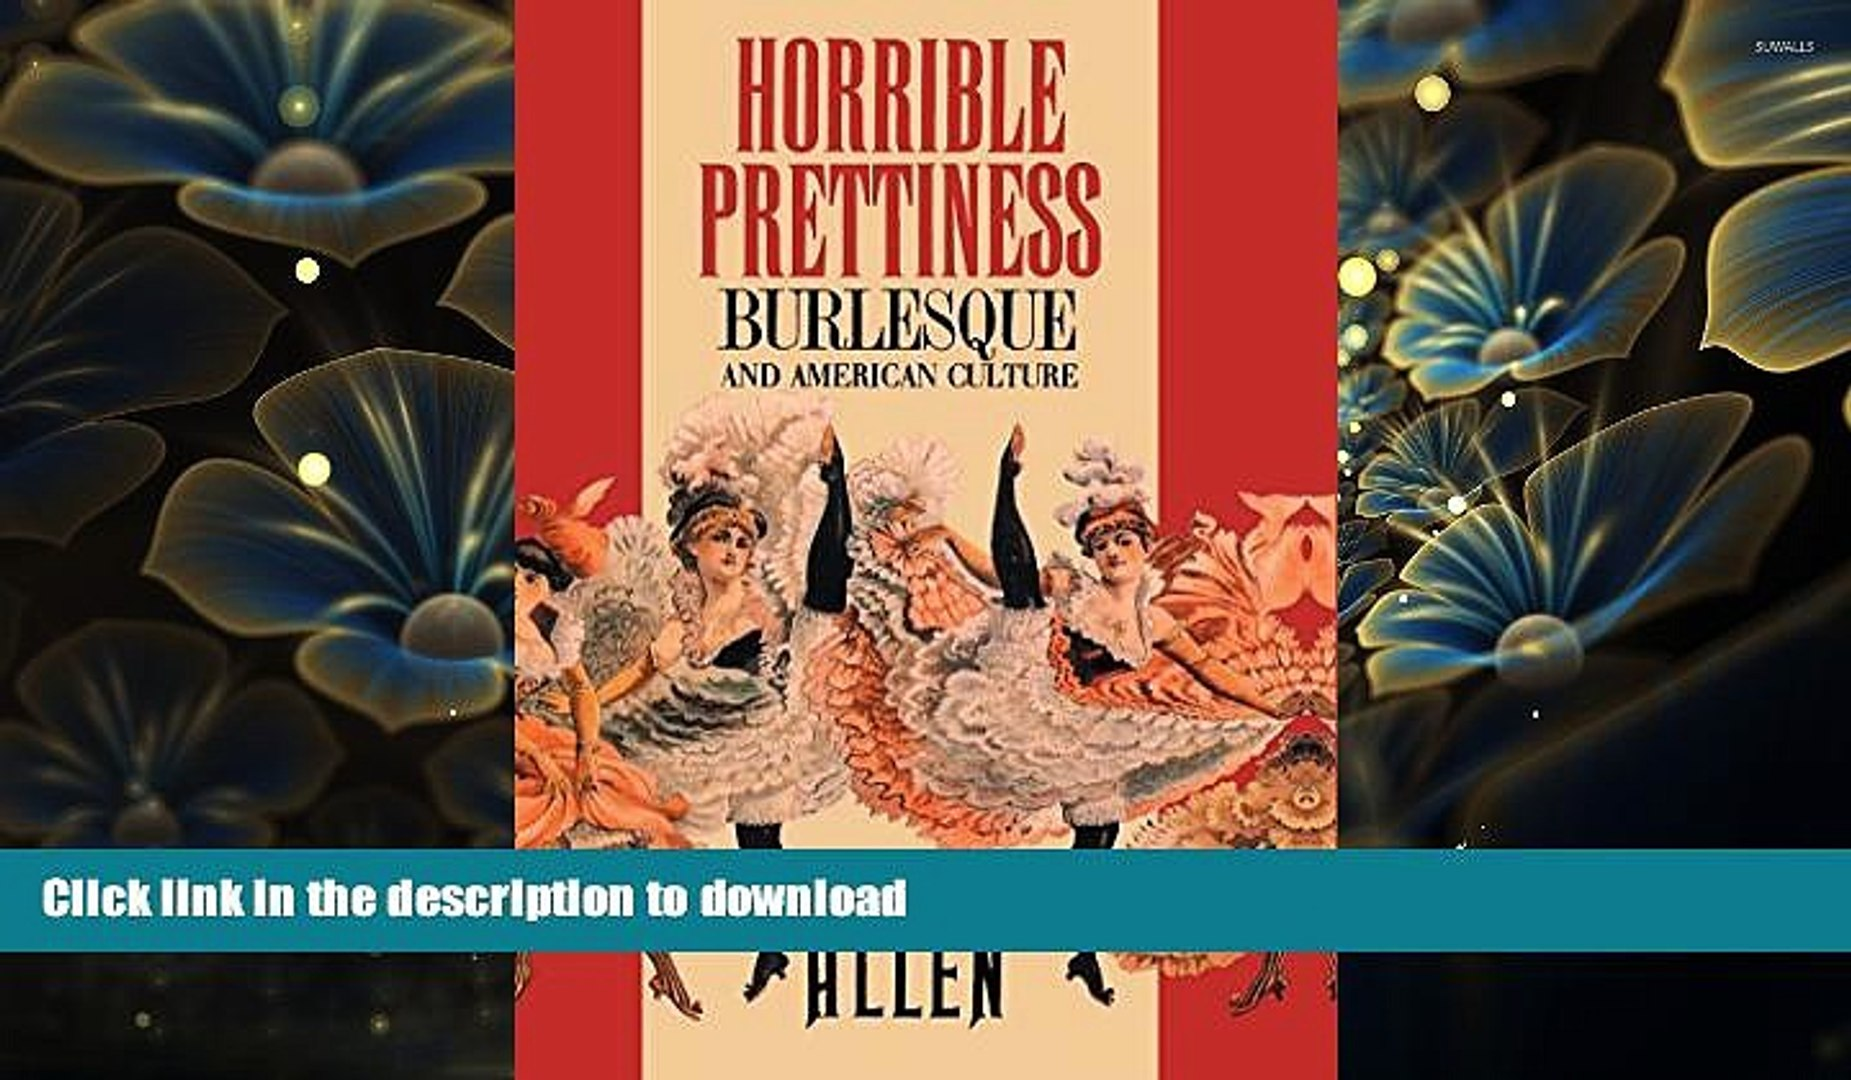 Horrible Prettiness: Burlesque and American Culture